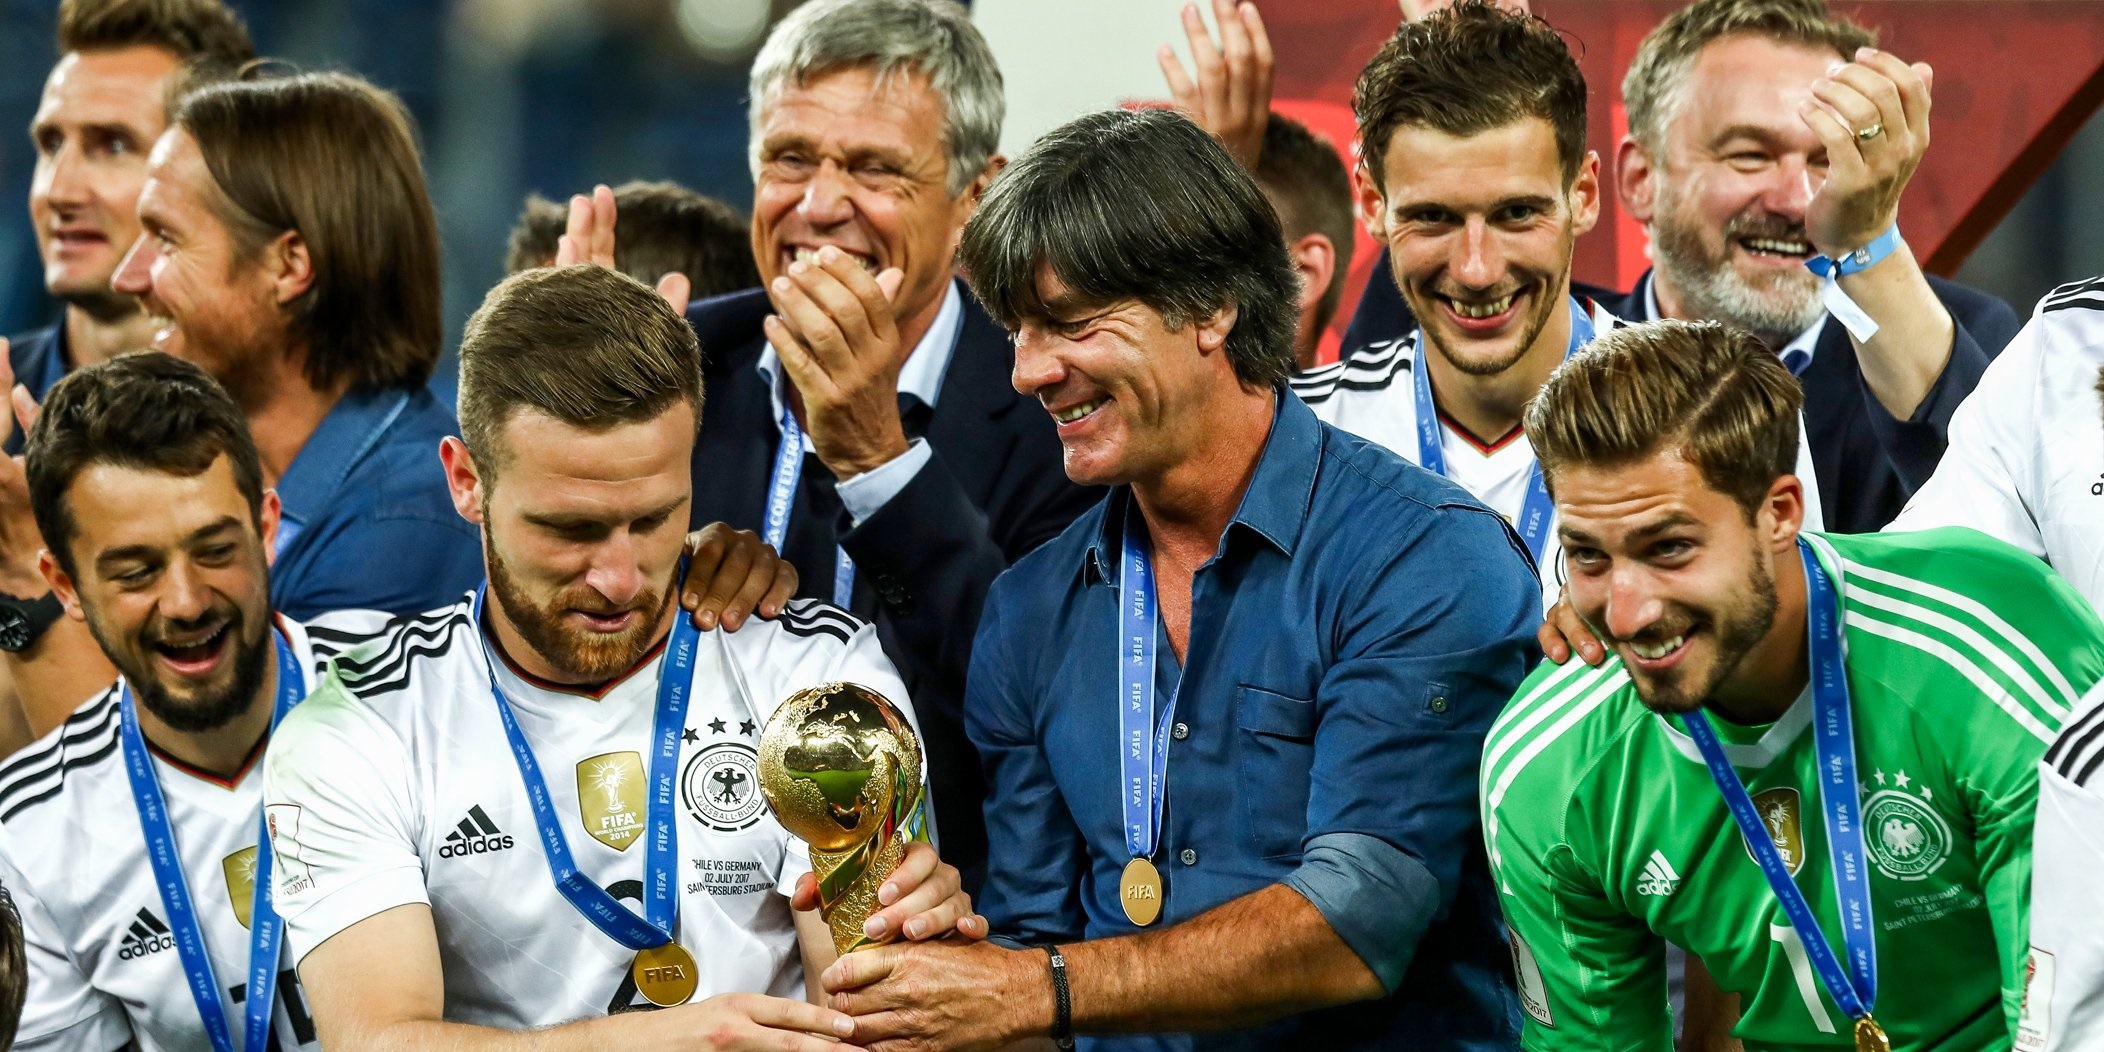 Germany manager Joachim Low hits back at Jurgen Klopp after tactical critique